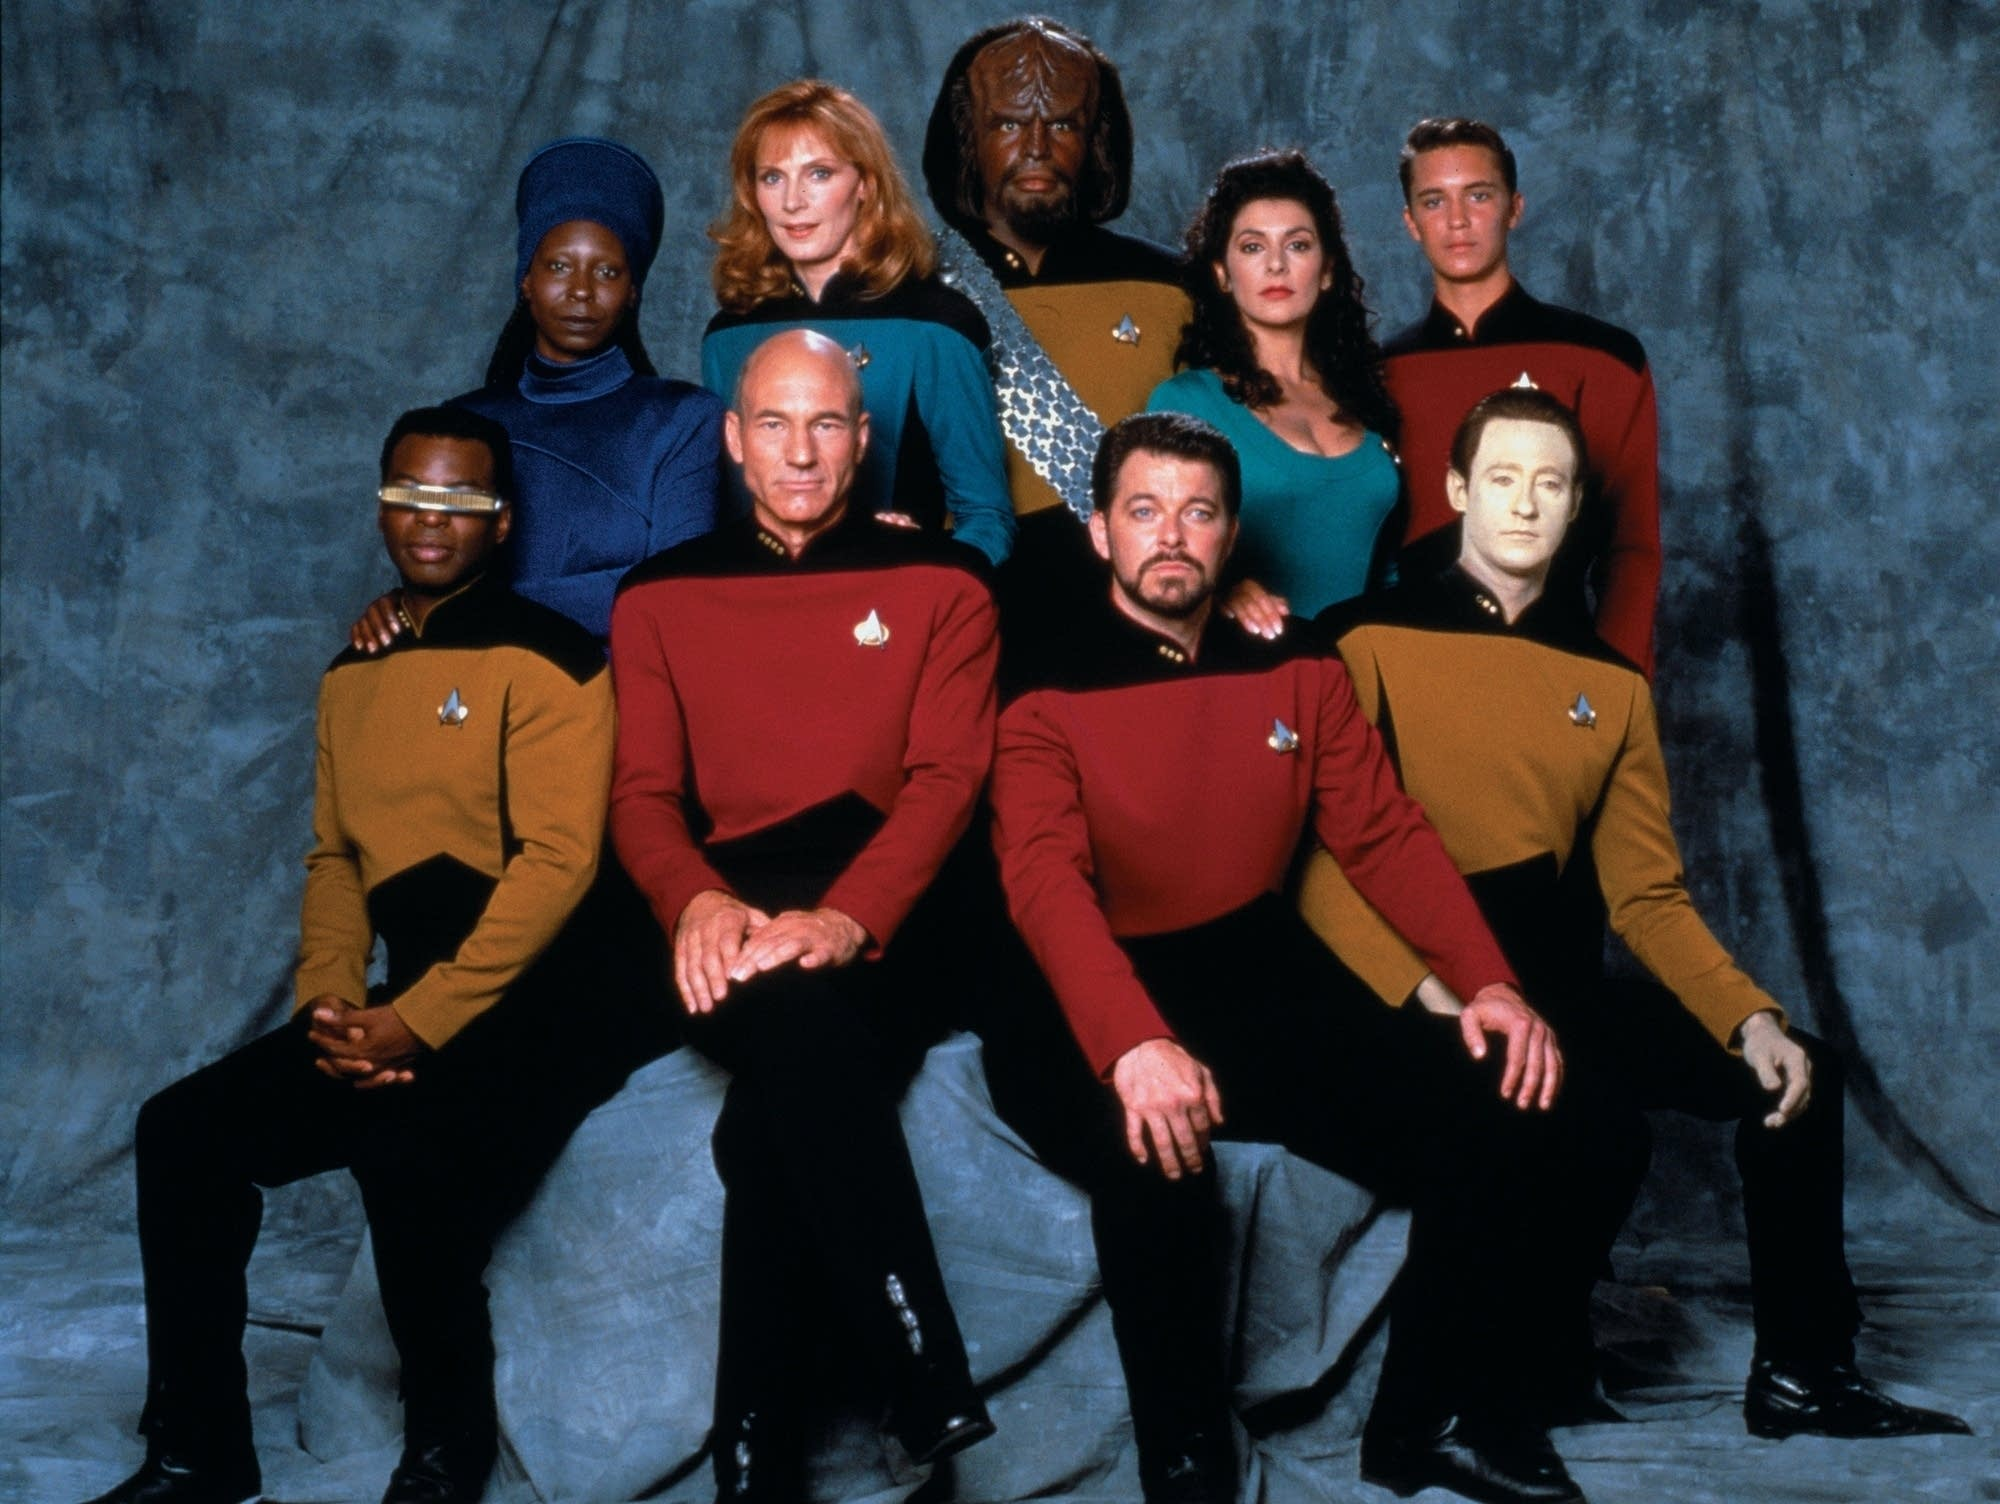 Star Trek: The Next Generation (1991) – The Host, and The